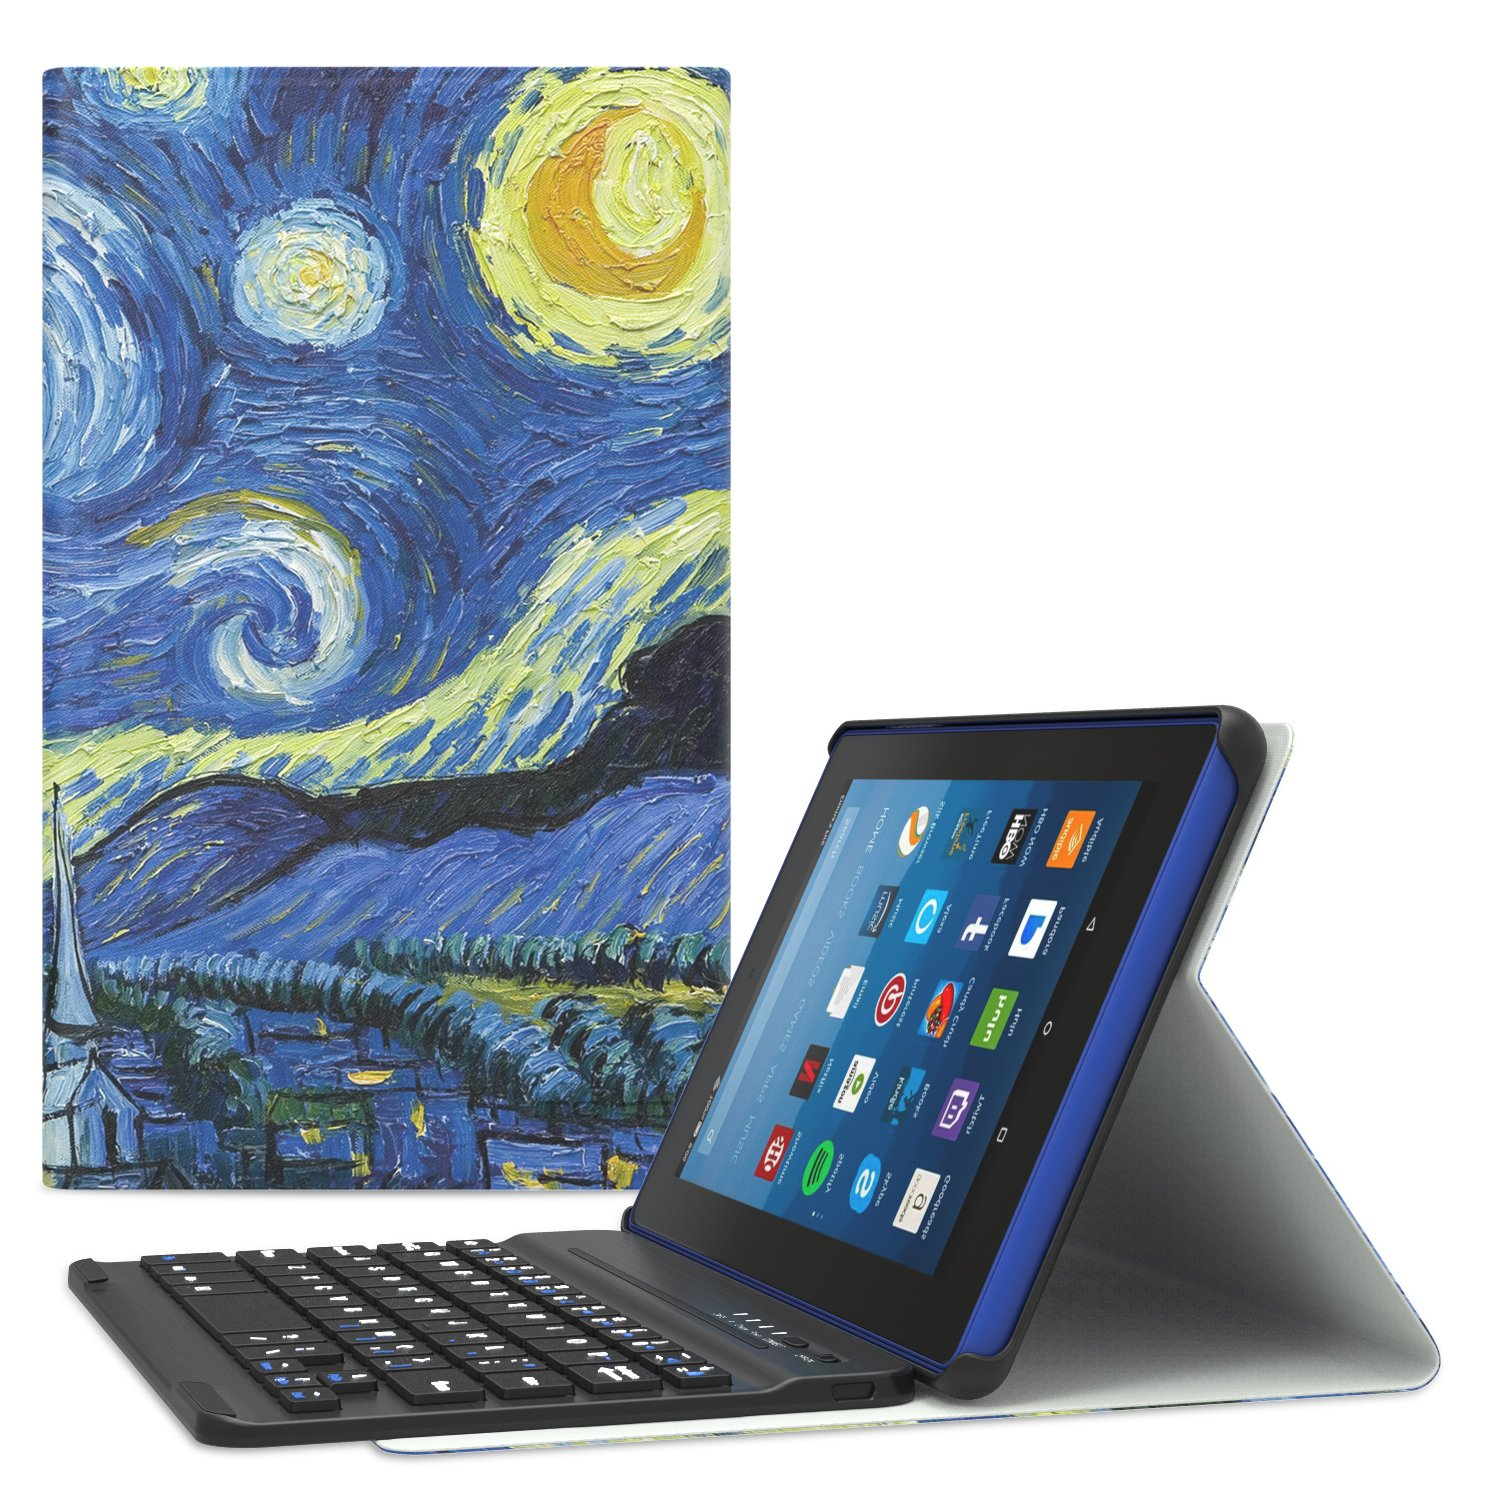 MoKo Keyboard Case for All-New Amazon Fire HD 8 Tablet - Wireless Keyboard Cover with Auto Wake / Sleep for Fire HD 8 (7th Gen–2017 Release) / Fire HD 8 (6th Gen-2016 Release), Starry Night